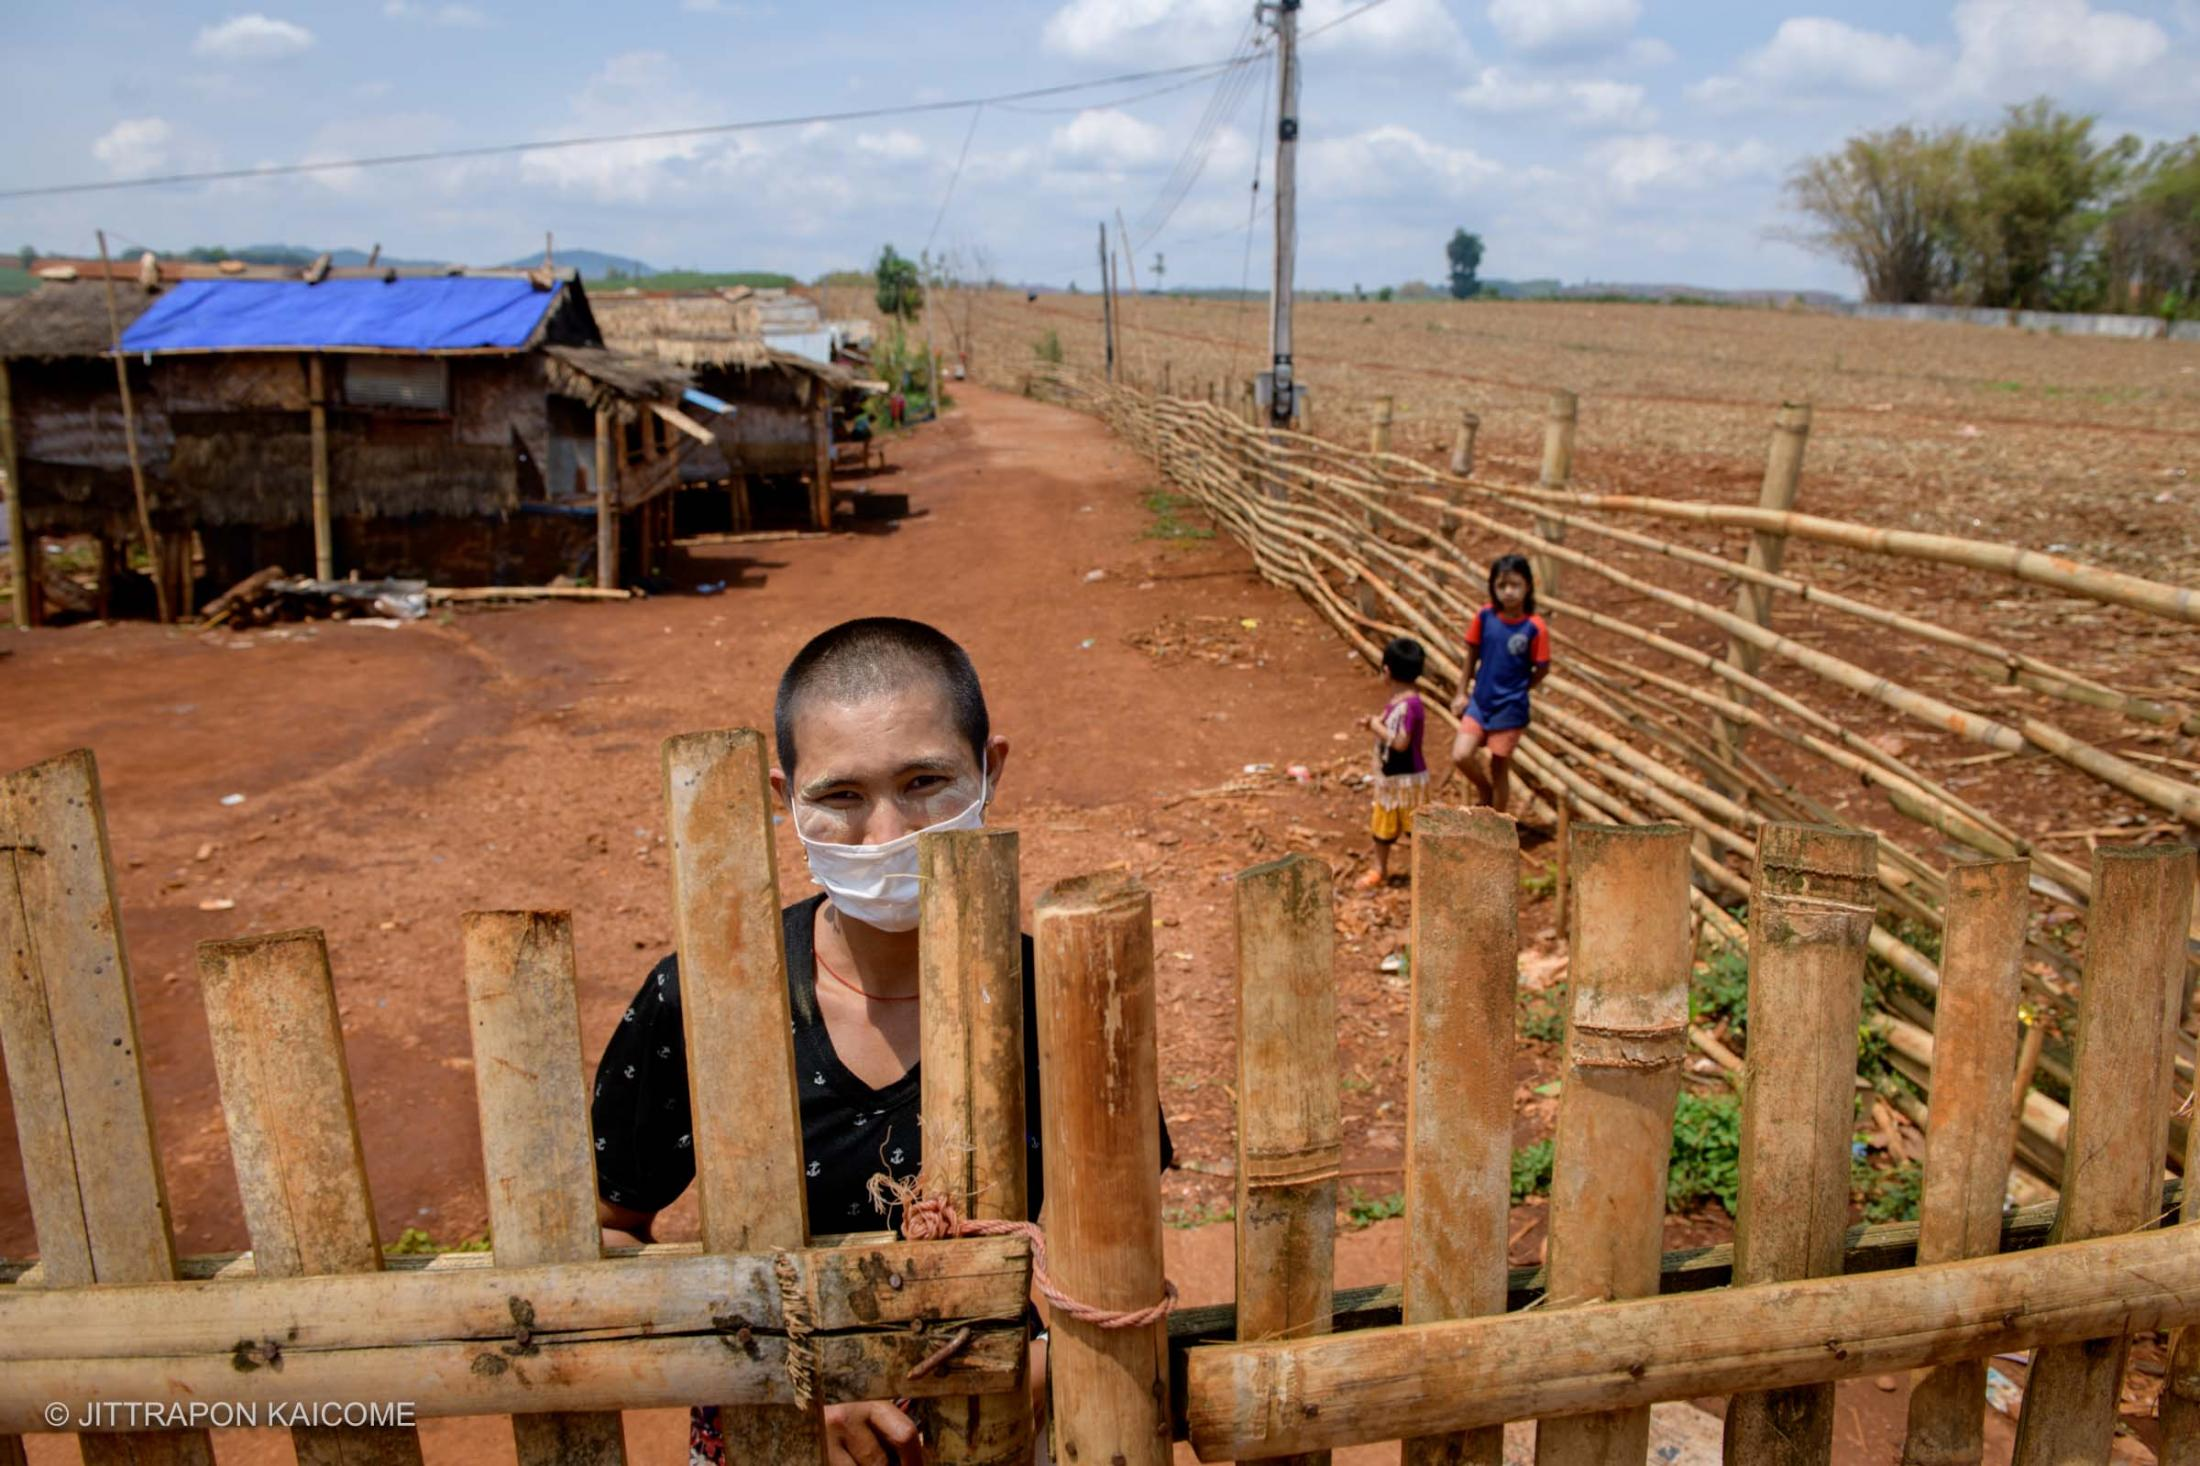 A village along the Thai-Myanmar border lockdown causing Burmese migrant workers unable to farm and have no jobs left them no income due to the Coronavirus outbreak - Phop Phra, Tak, Thailand, in May 2020.